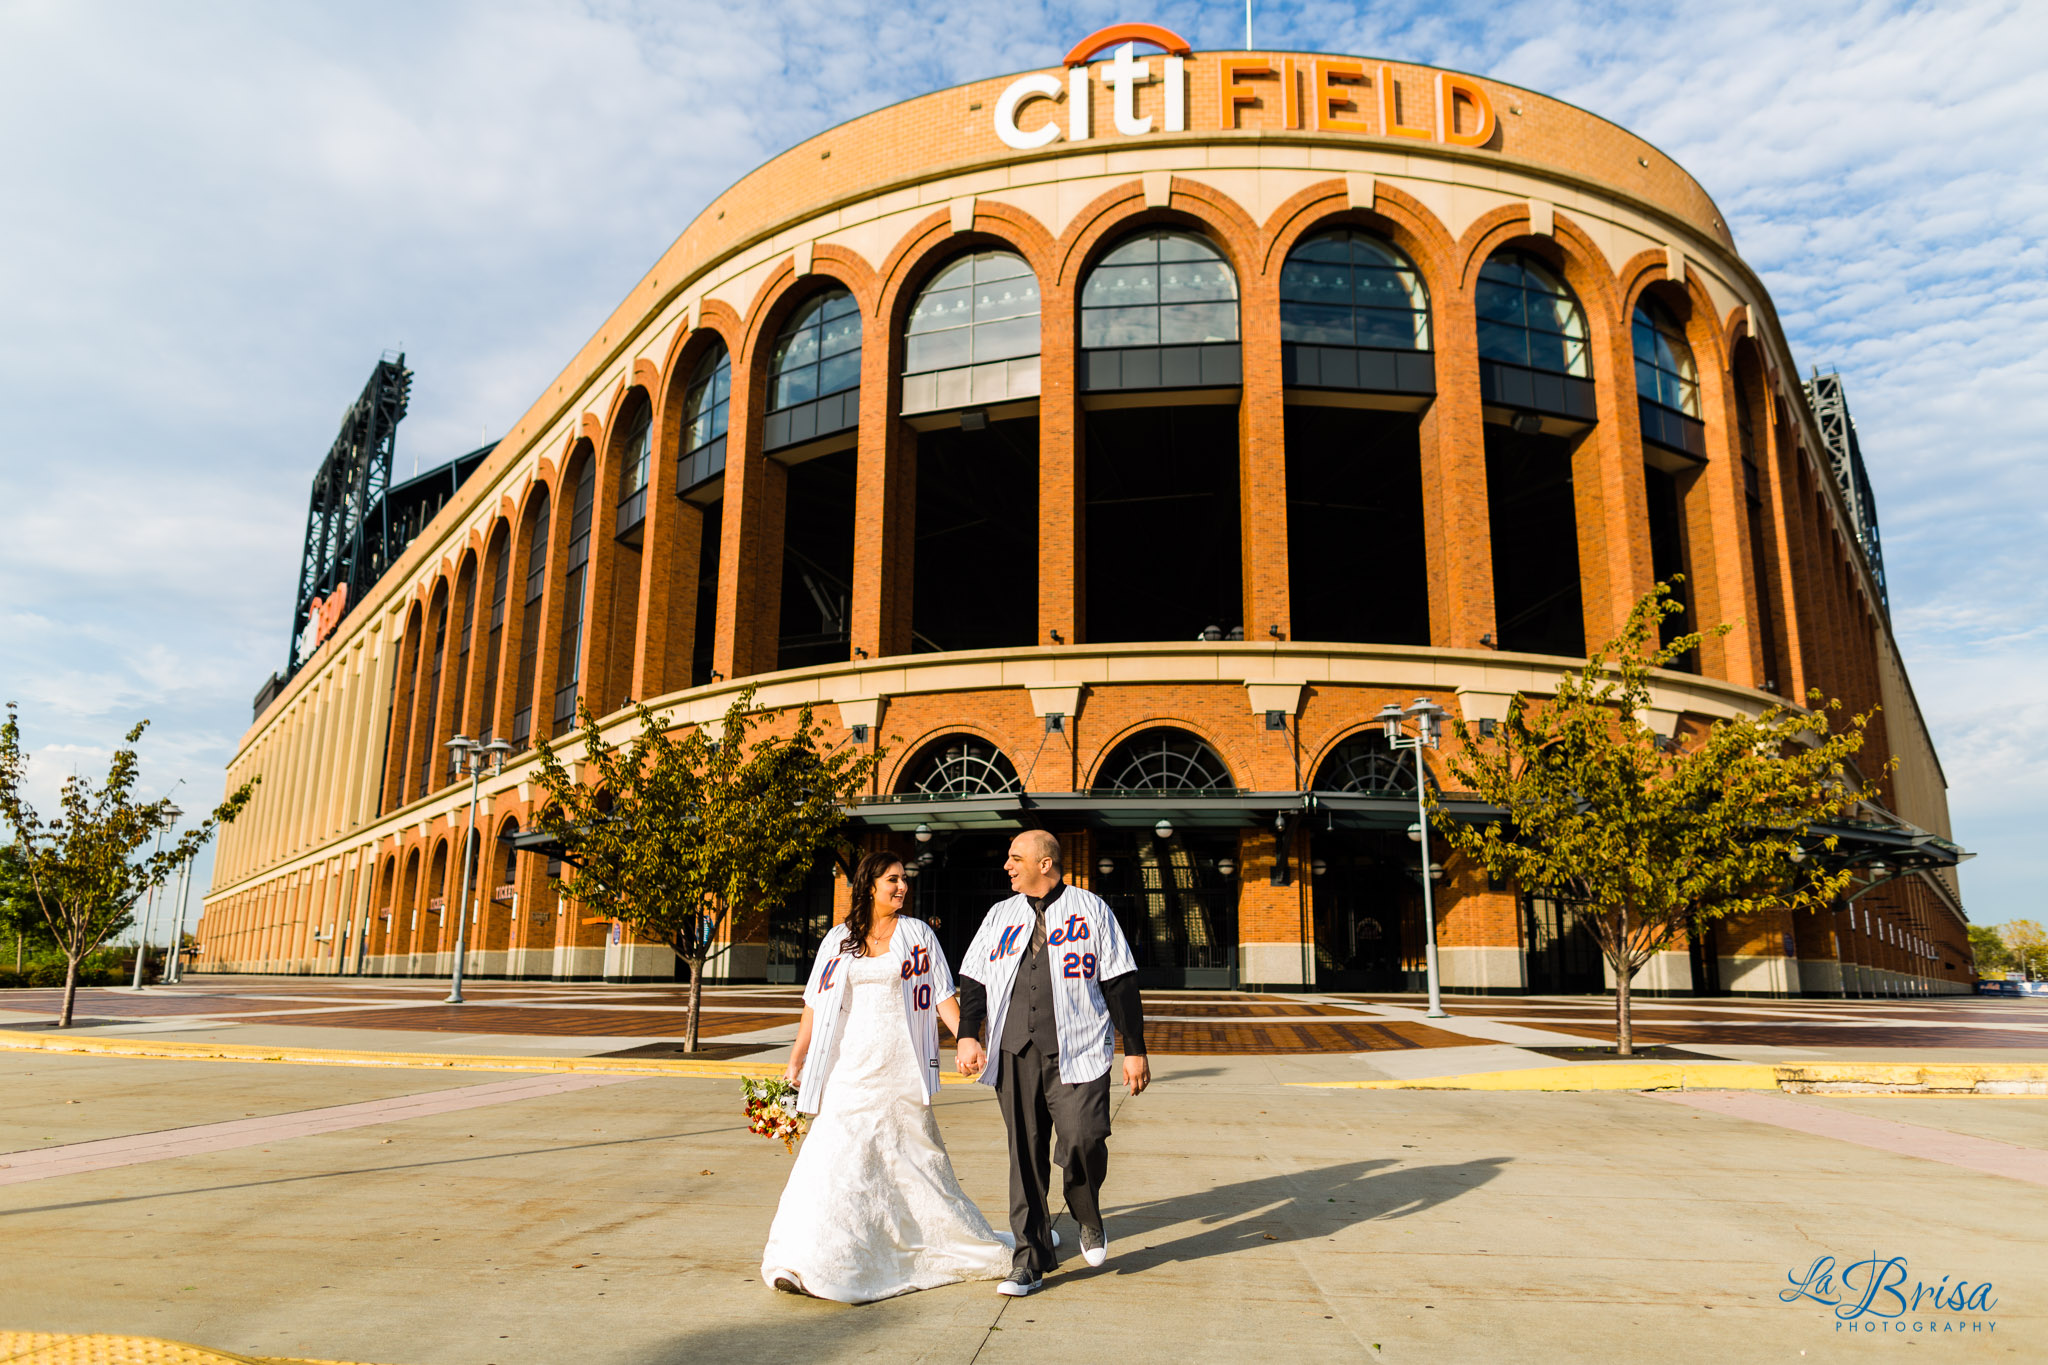 Bride Groom Citi Field Wedding Portrait